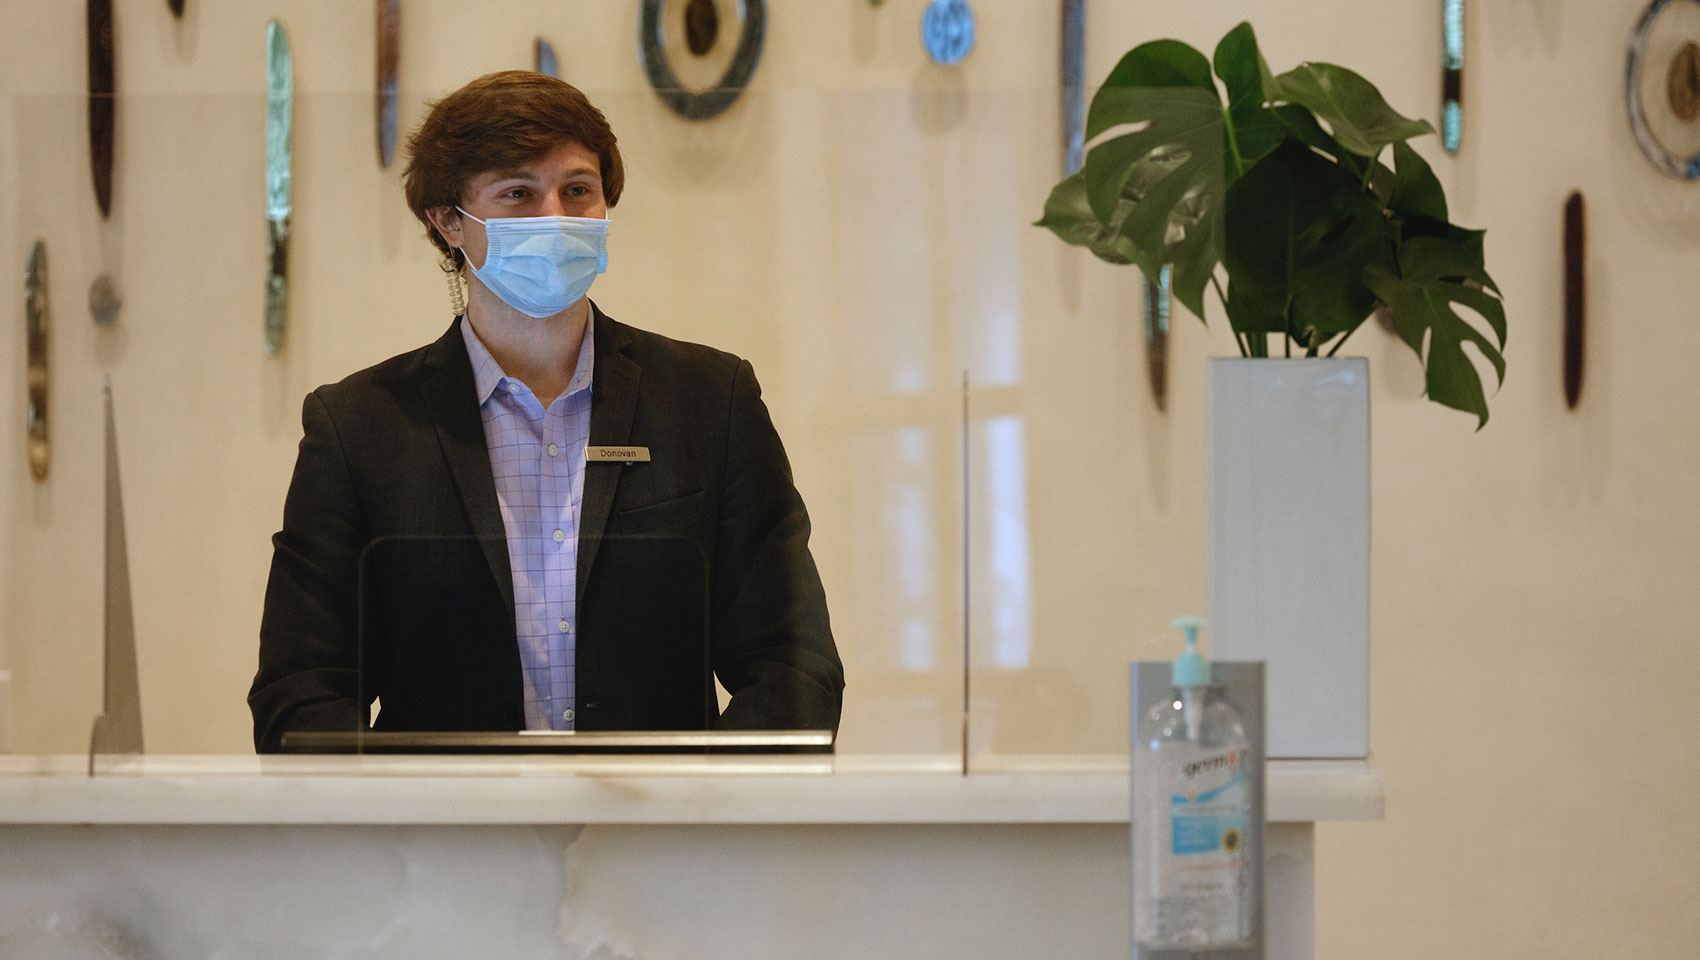 desk clerk with mask on in socially distant lobby